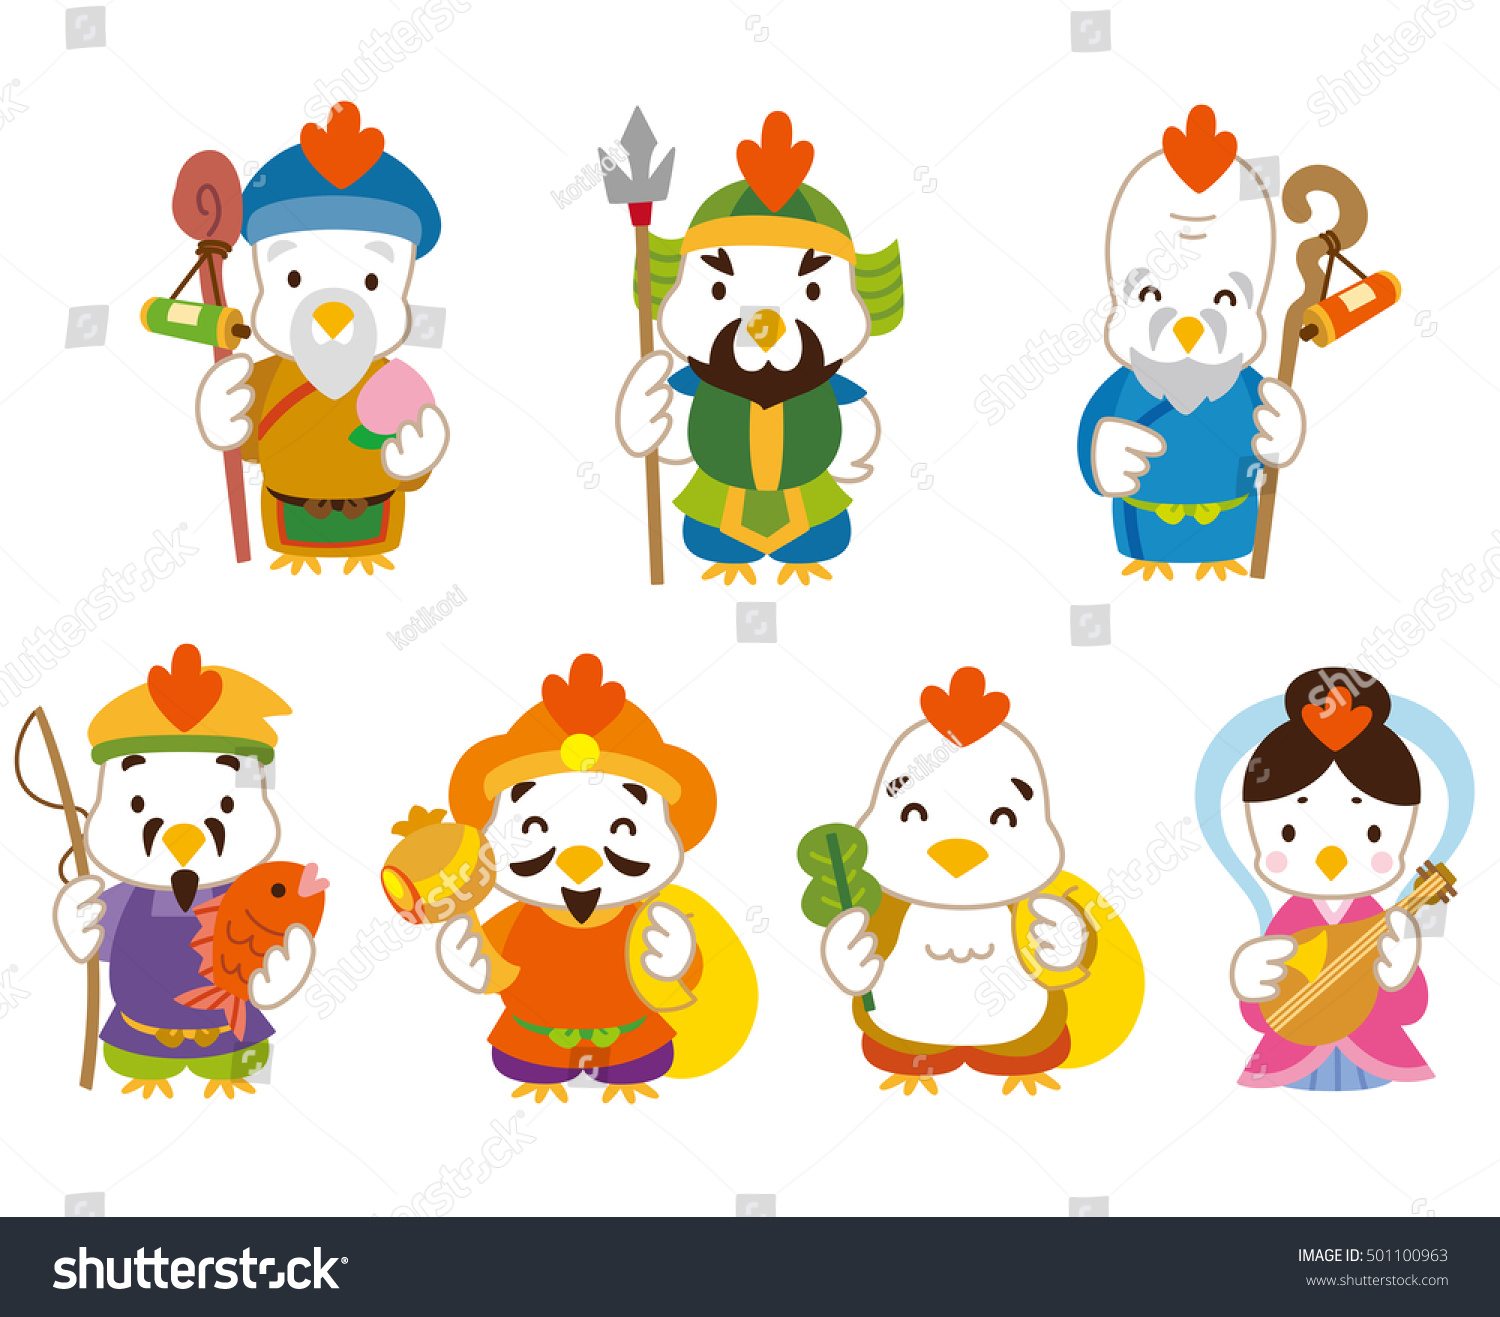 Seven deities of good fortune of the chicken